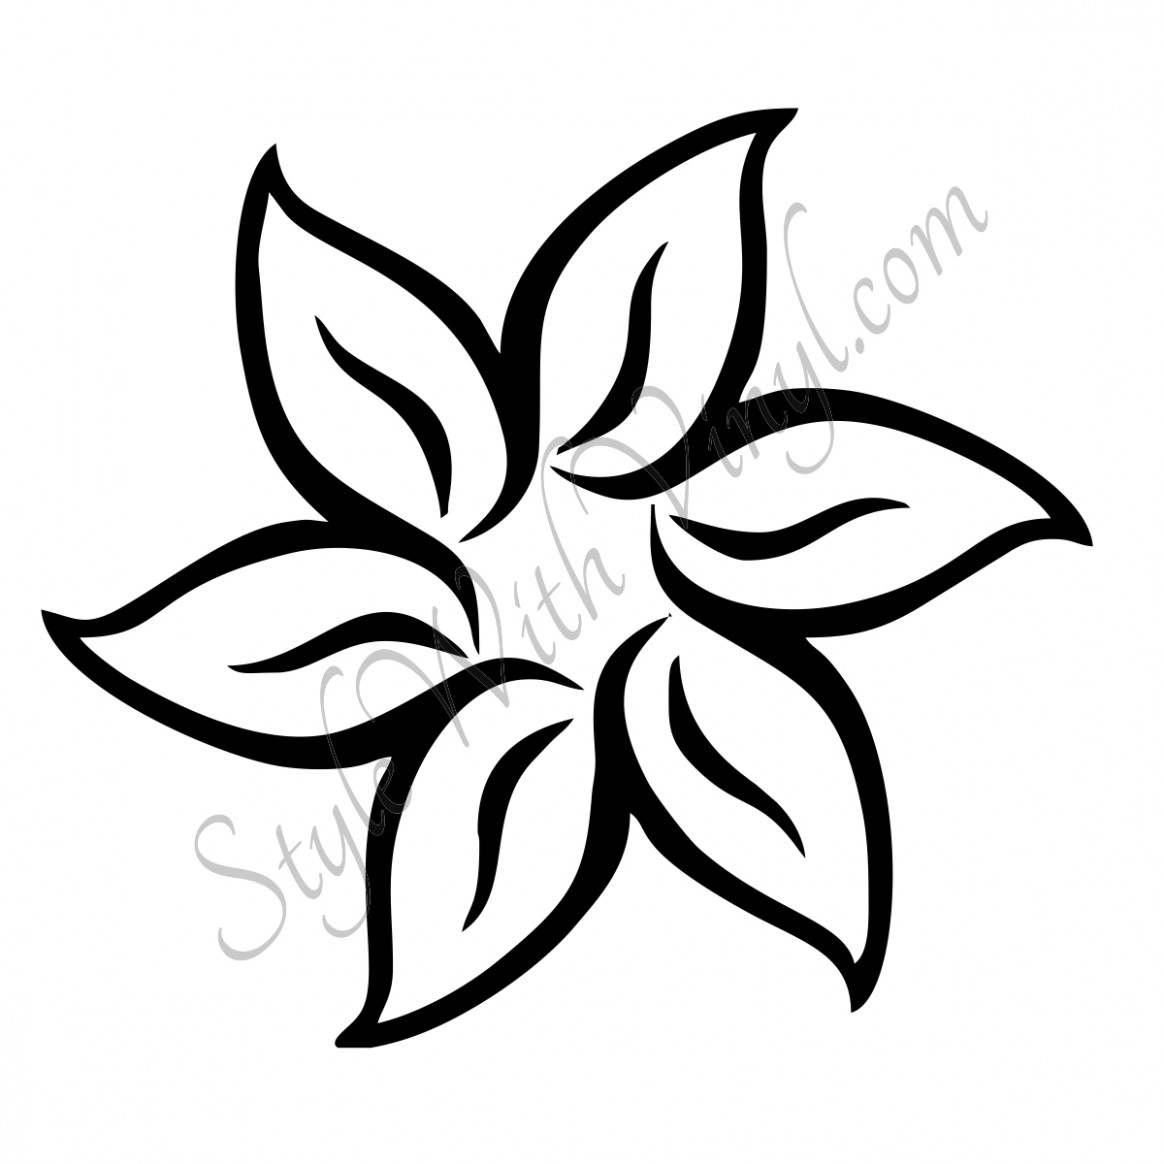 1164x1164 Simple Flower Drawing Simple Flower Drawing Simple Flower Drawing